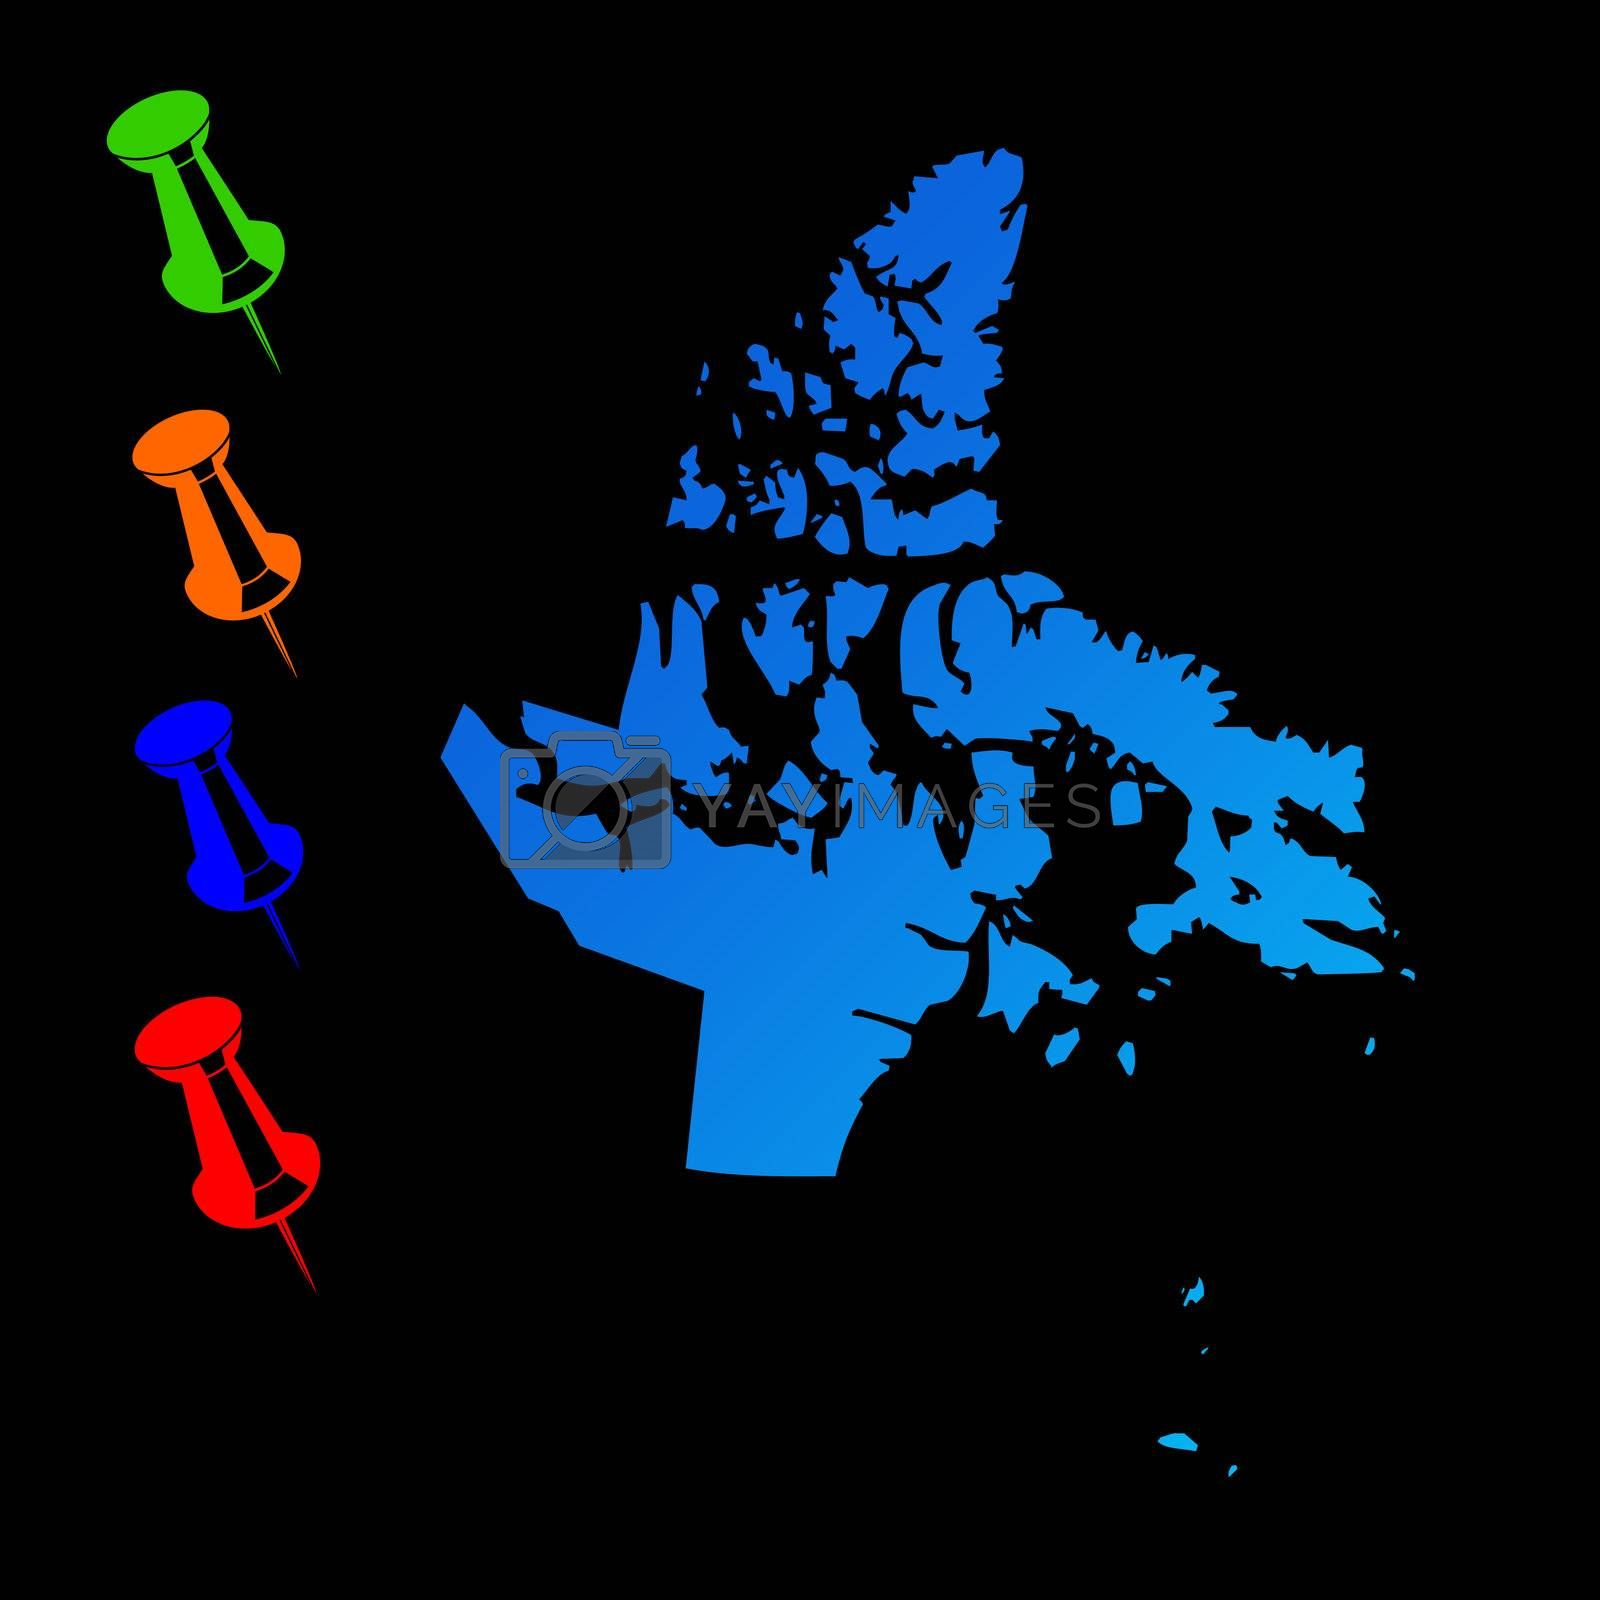 Canadian state of Nunavut travel map with push pins on black background.